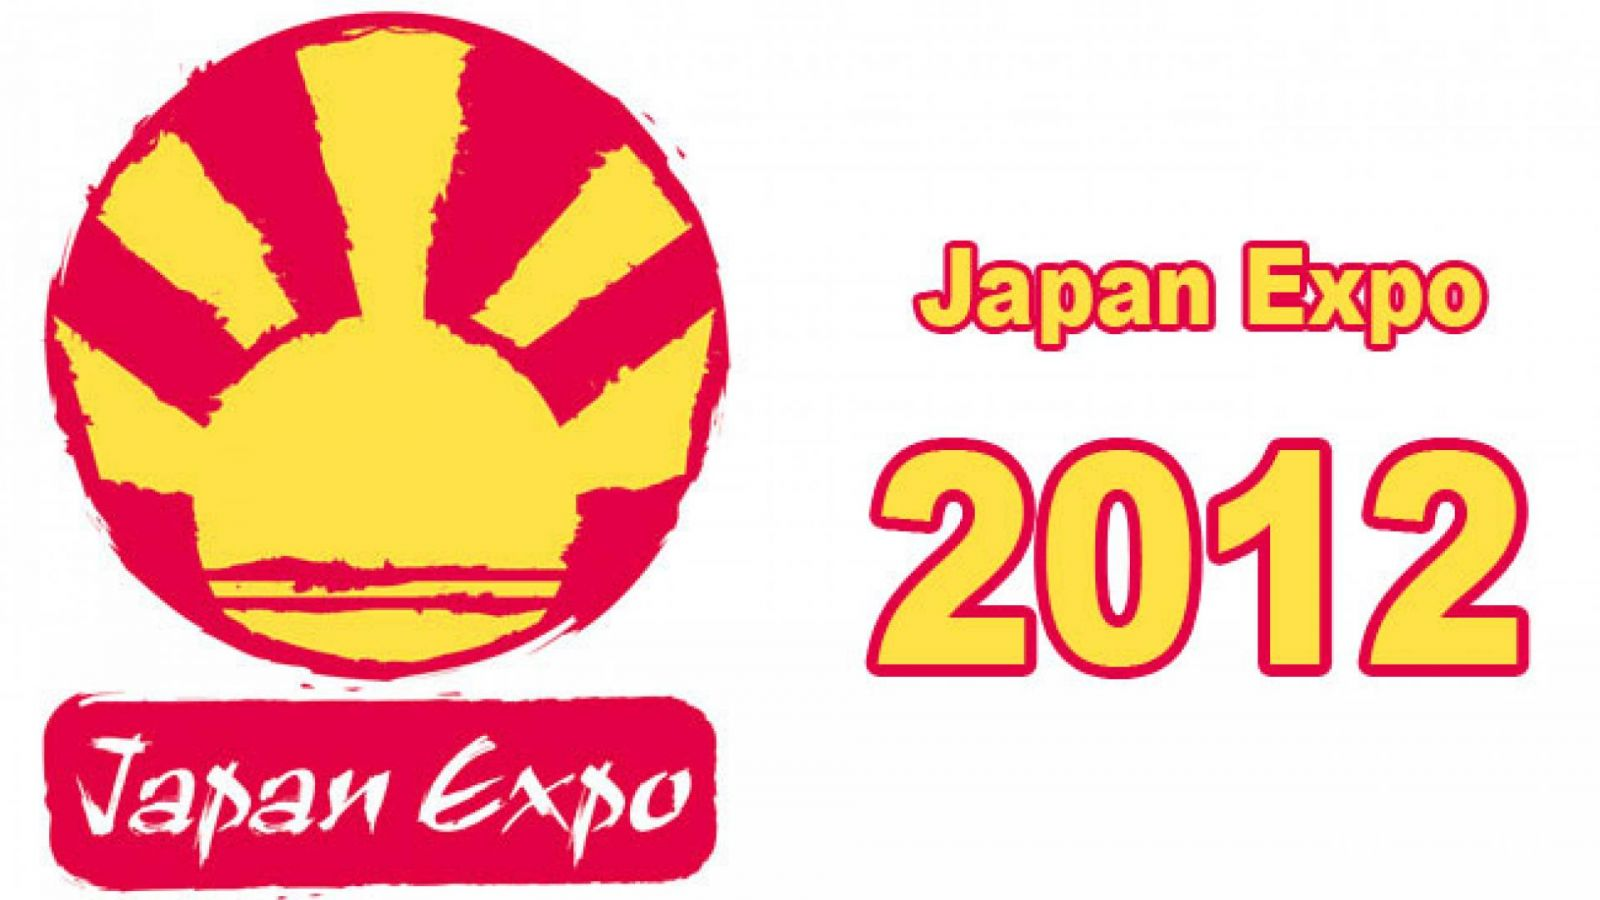 Japan Expo 2012 : Demandez le programme! © SEFA Event